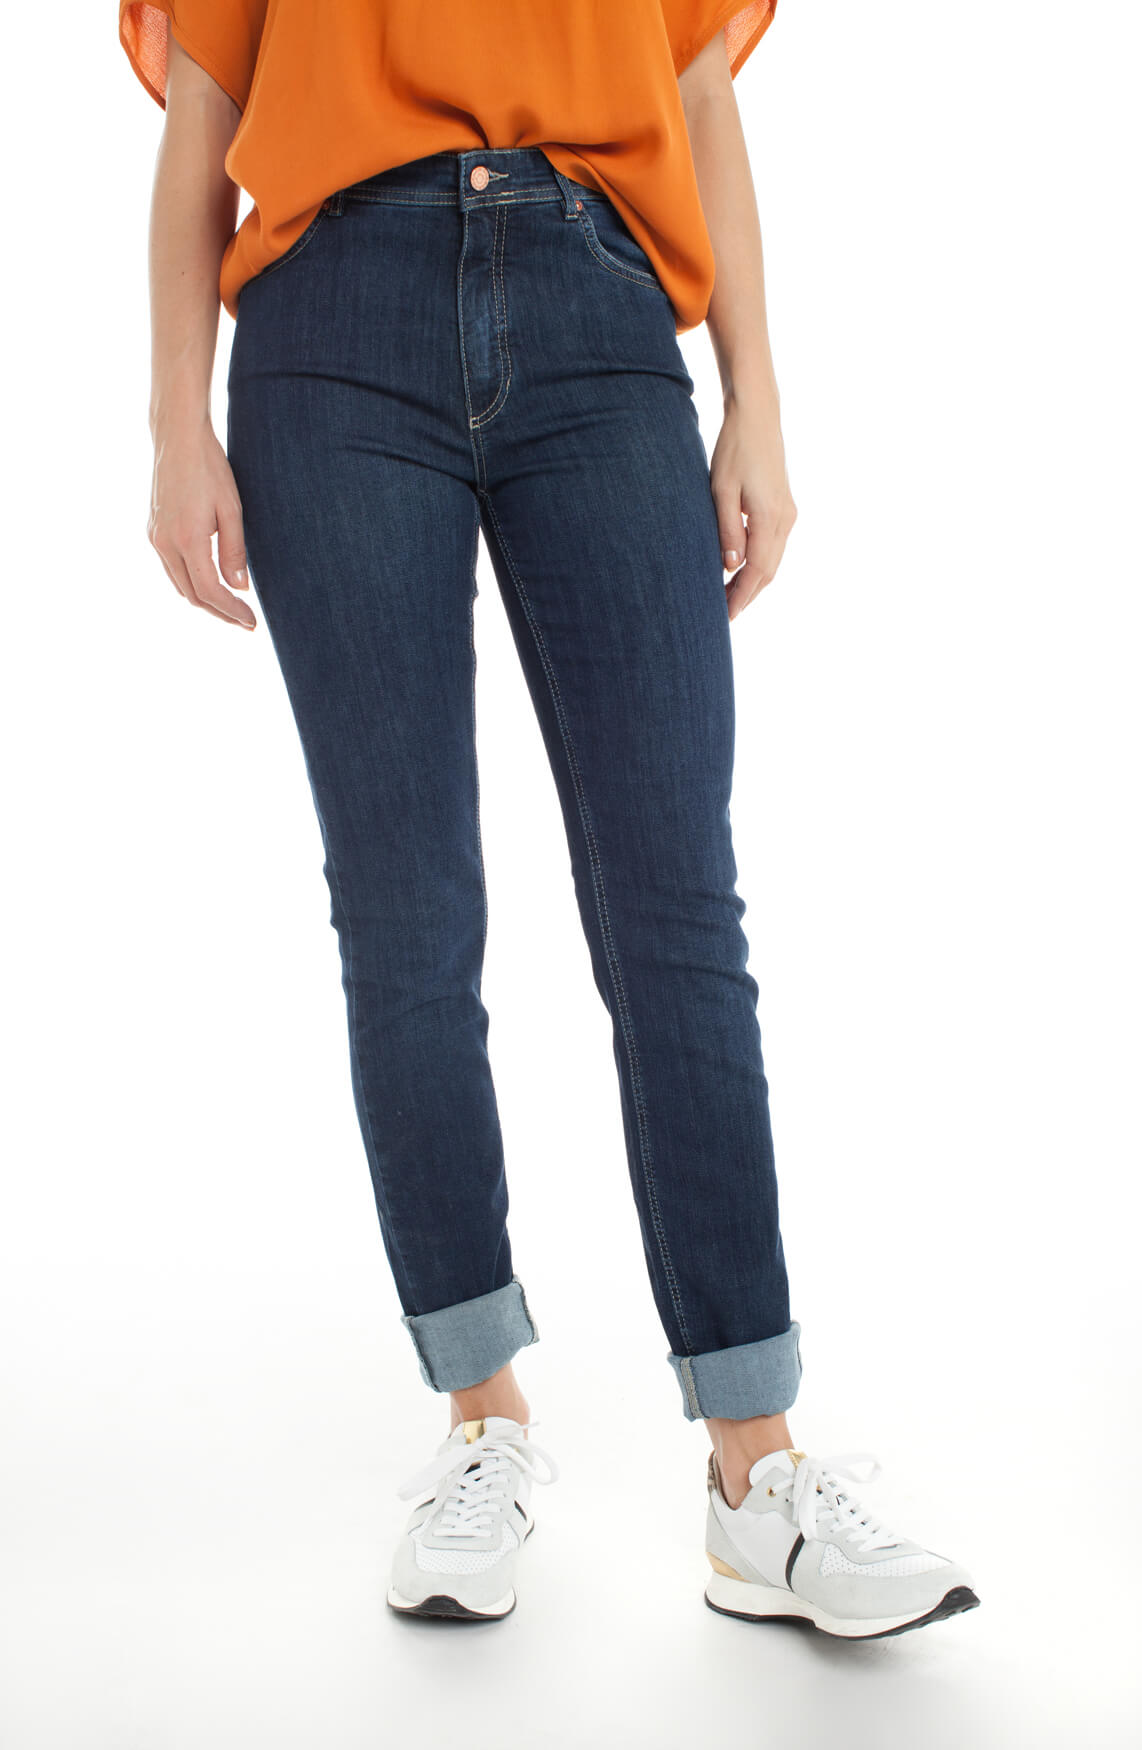 Rosner Dames Audrey bodyshaping jeans Blauw